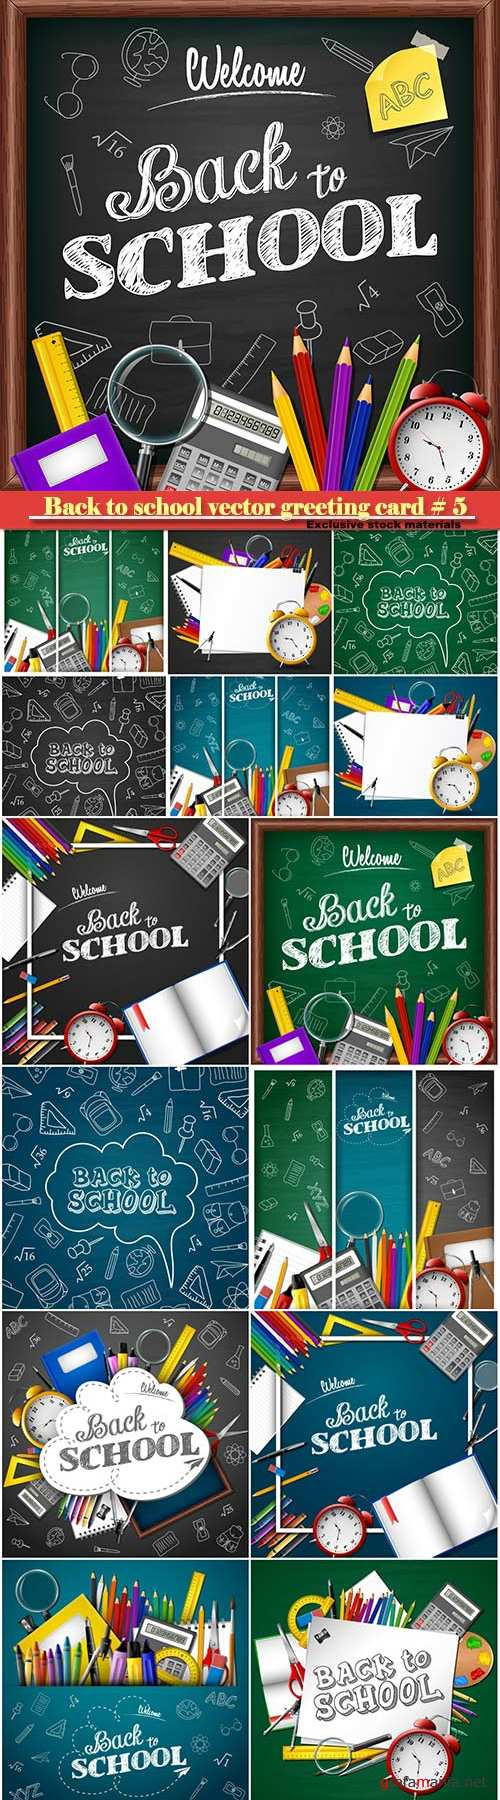 Back to school vector greeting card # 5